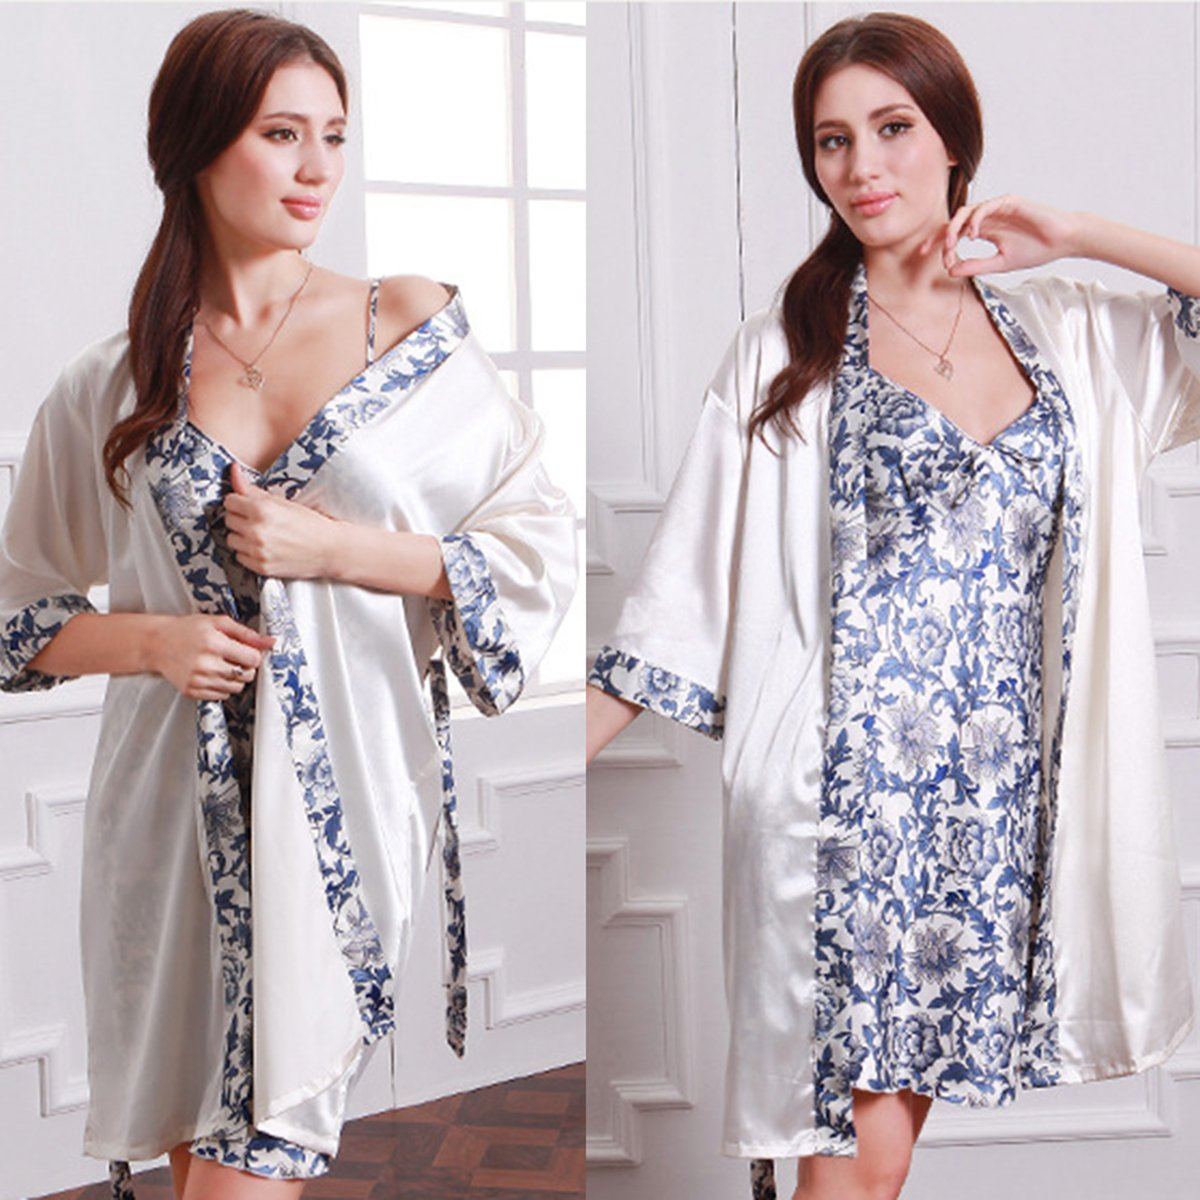 Summer Luxury Women Sleepwear Faux Silk Sleepwear Robe Gown Sets Chinese  Porcelain Nightdress Floral Print Bathrobe 2 pcs Set d4482d2b7